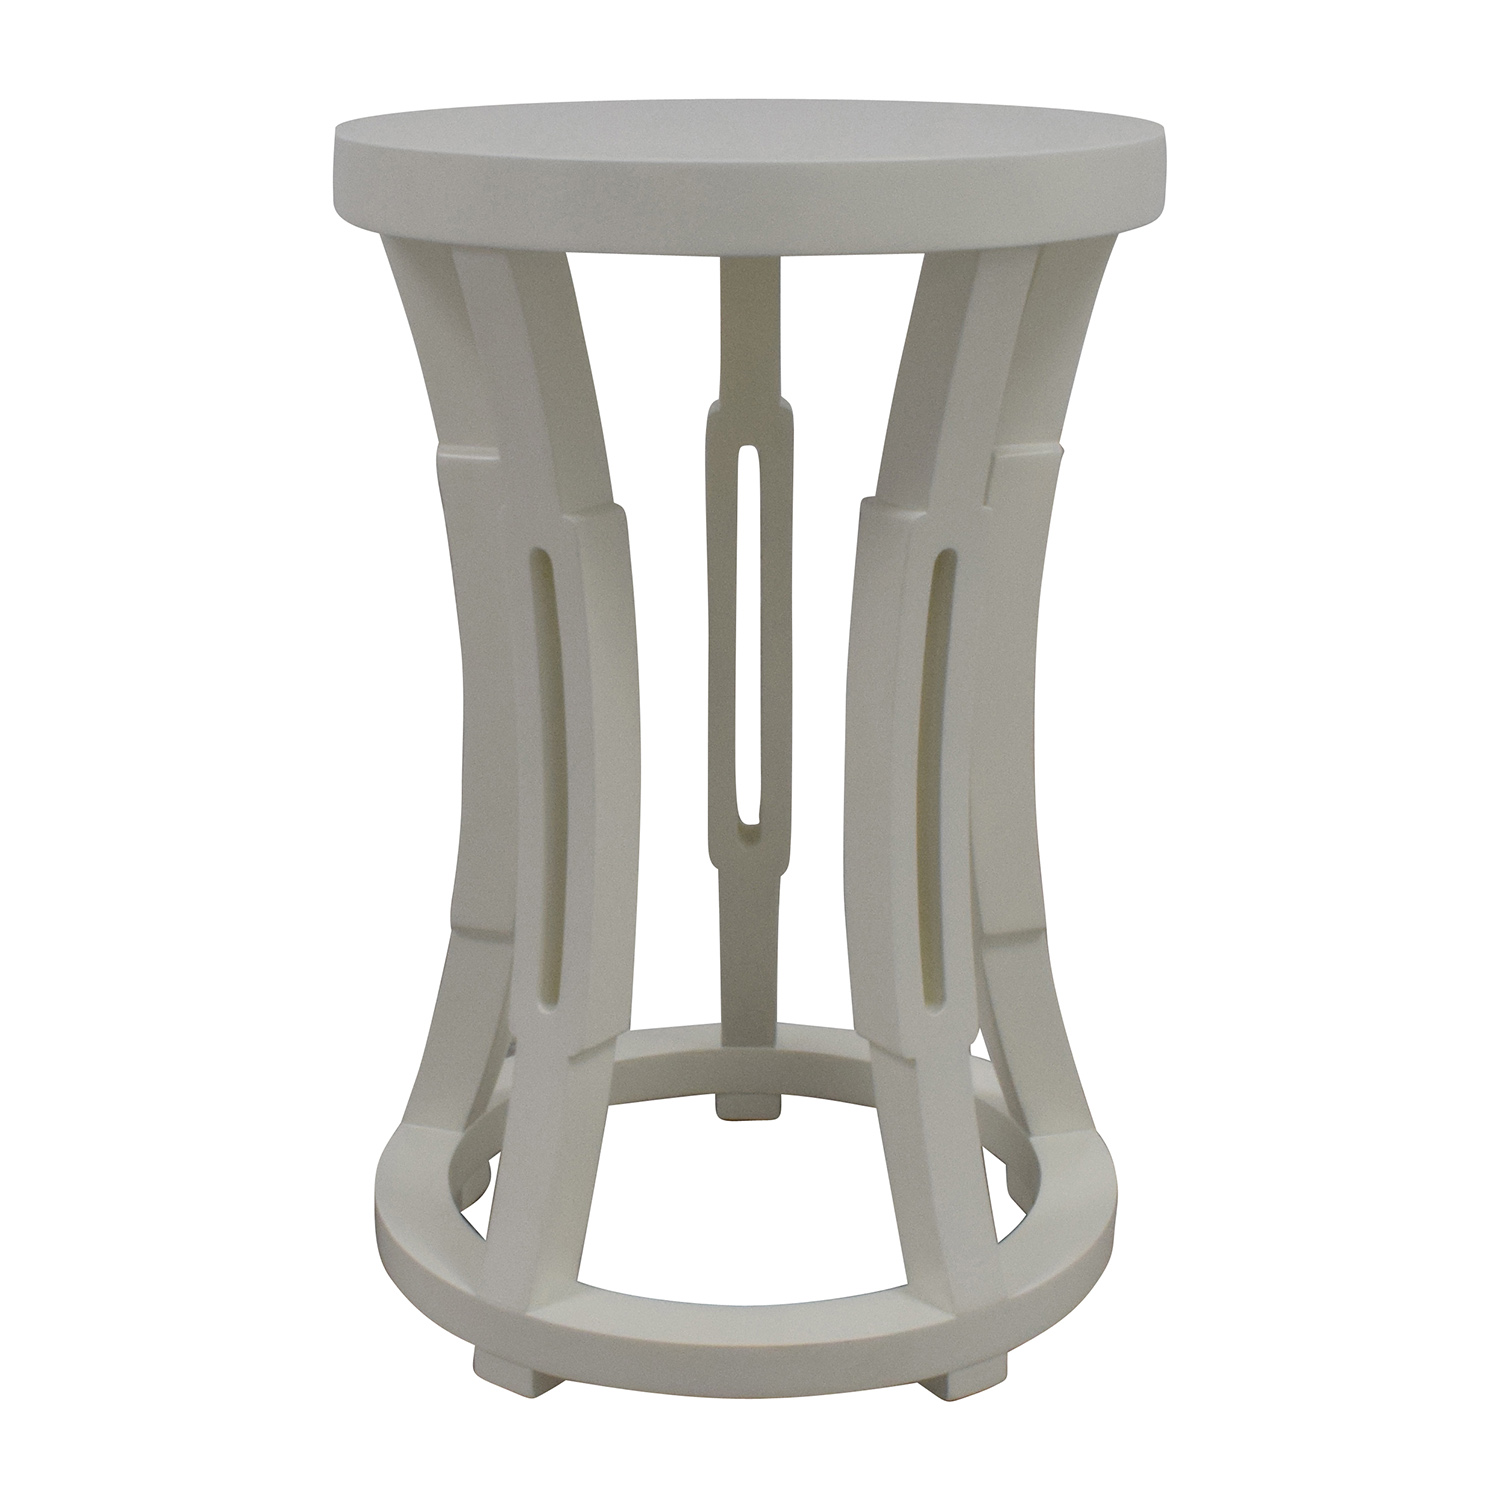 Bungalow 5 Bungalow 5 Hour Glass Stool Side Table or Stool second hand